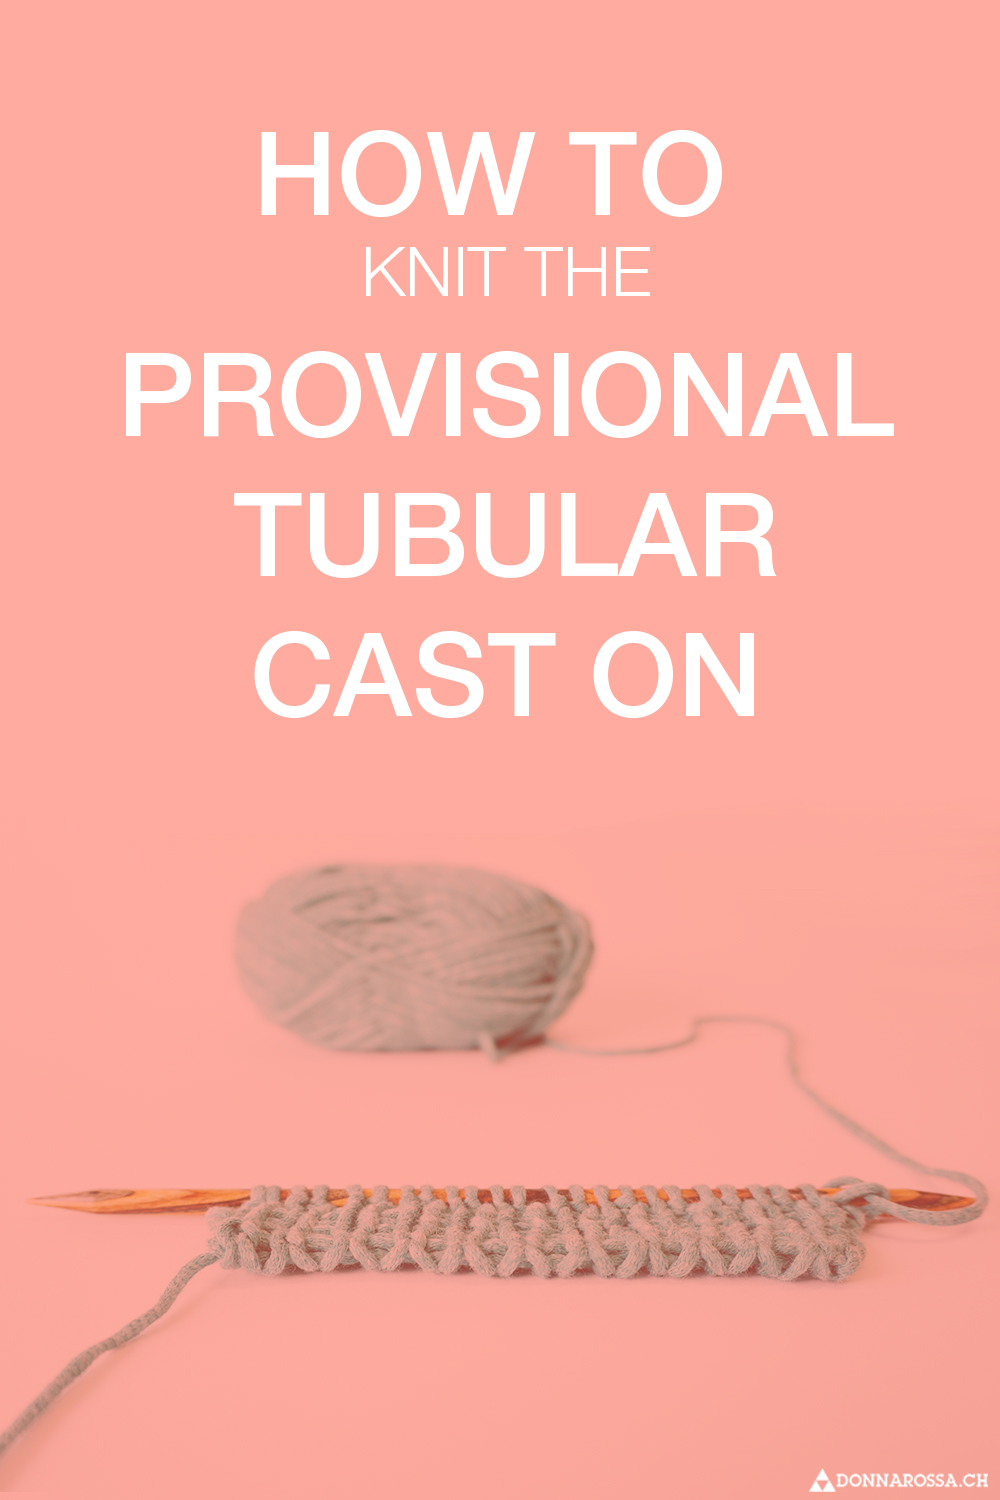 Tutorial Provisional Tubular Cast On tutorial how to knit donnarossa